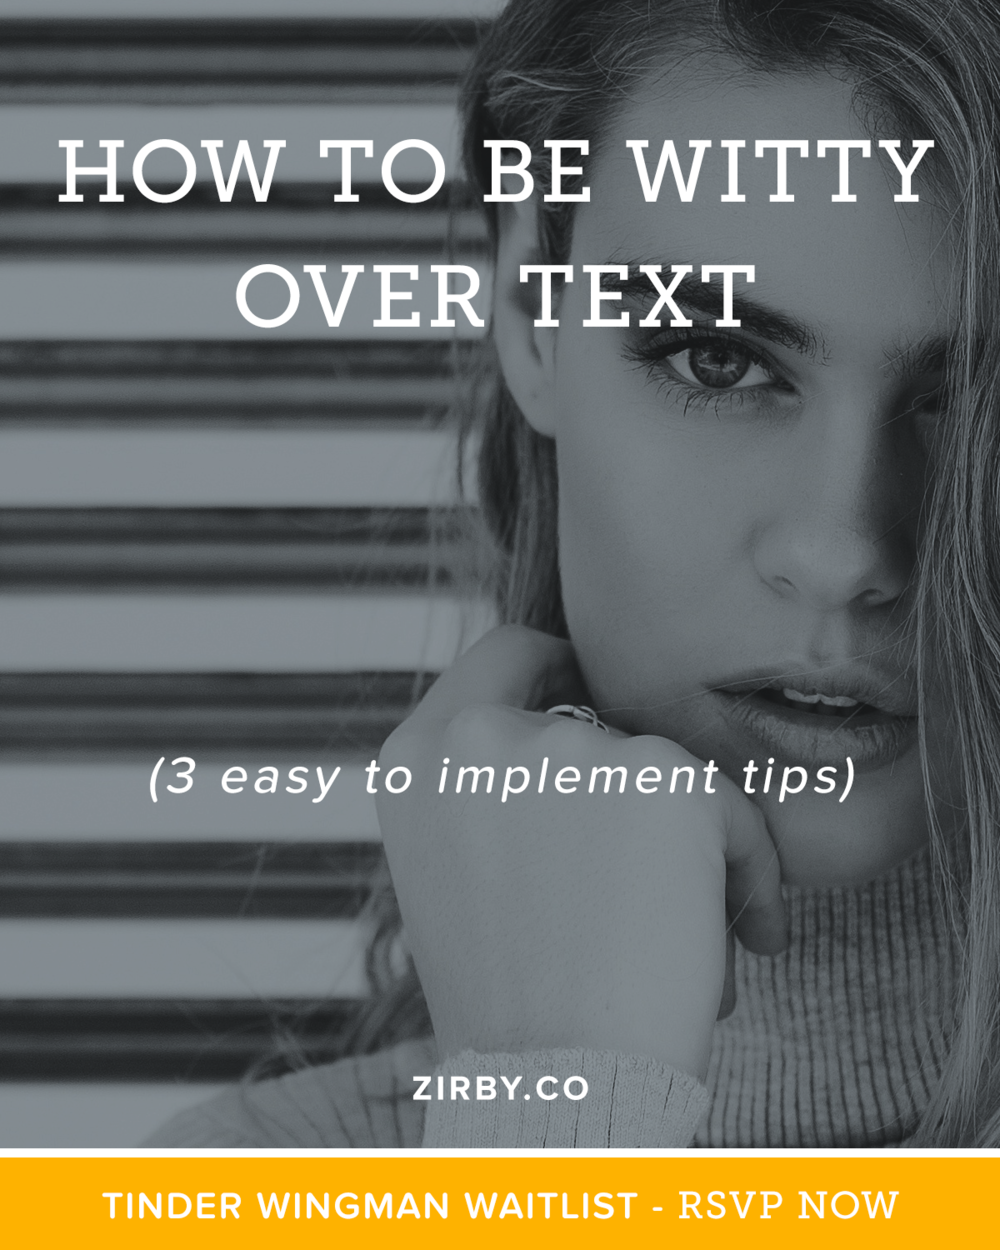 Wondering how to be Witty over Text, or on Tinder, OkCupid, etc? There's good reason. Wit is an extremely attractive quality in a man than women watch for. The best part is this skill is easy to learn with a little practice. I put together a video with 3 easy to implement tips that will start getting you more dates with beautiful women.